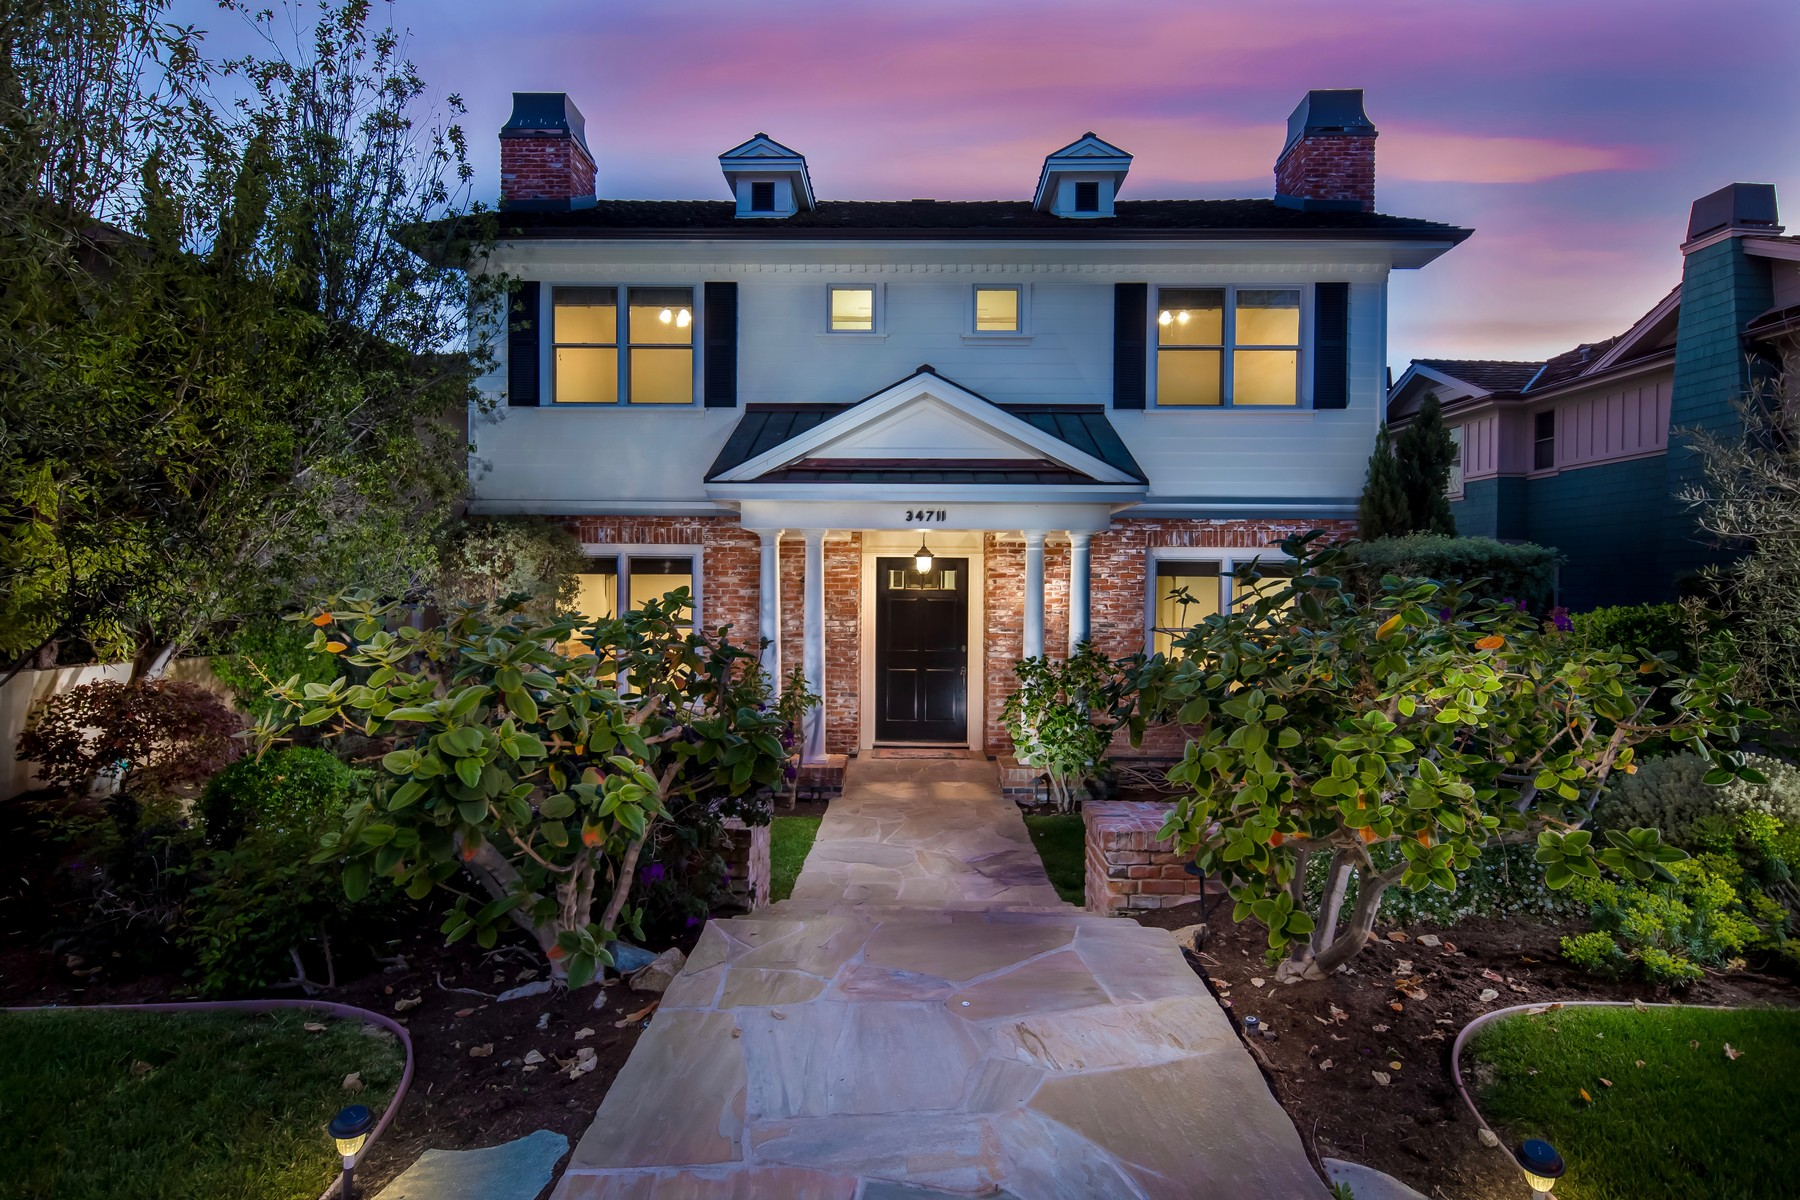 Single Family Home for Sale at 34711 Calle Loma Dana Point, California 92624 United States